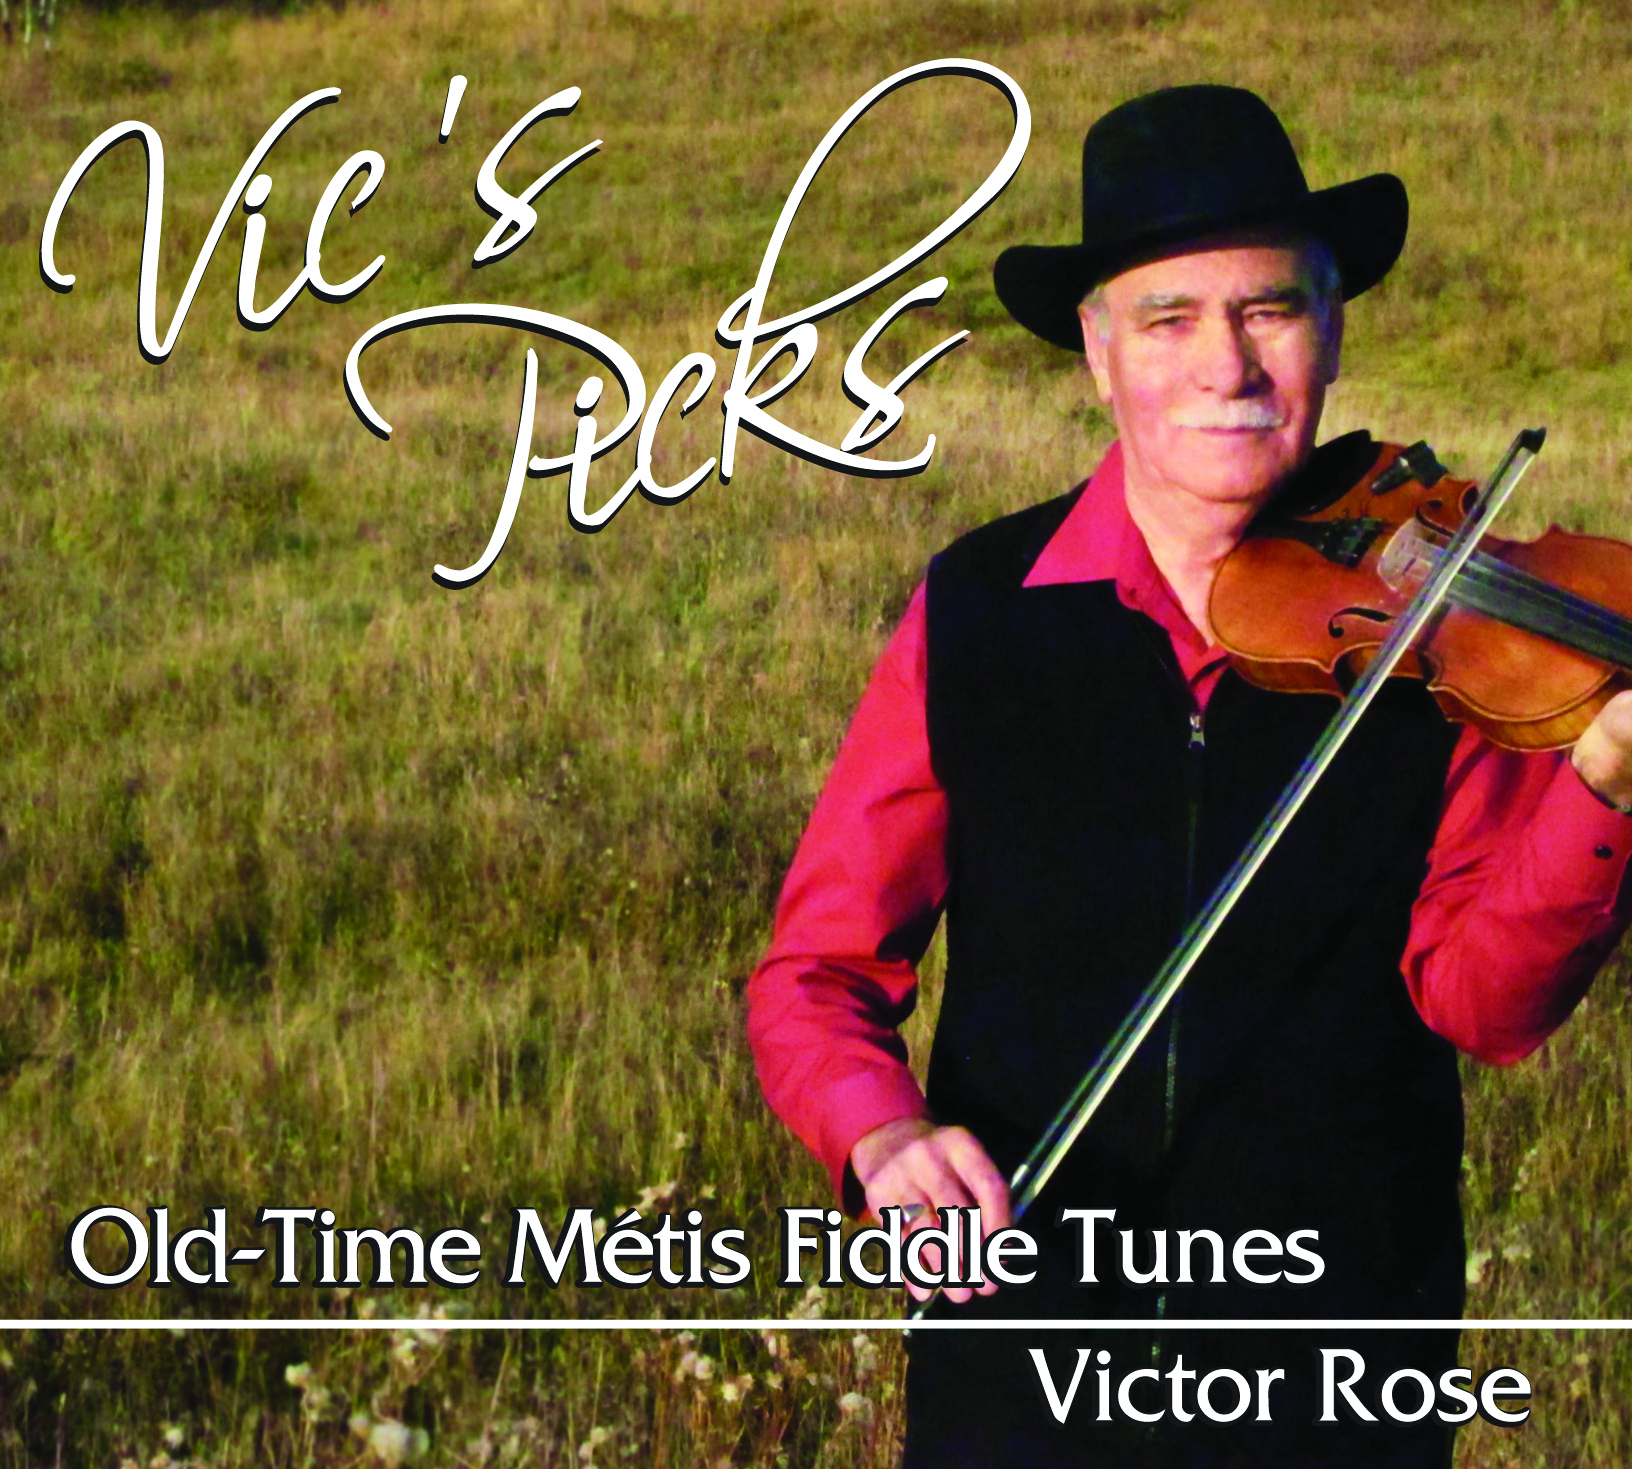 Vic's Picks: Old-Time Métis Fiddle Tunes